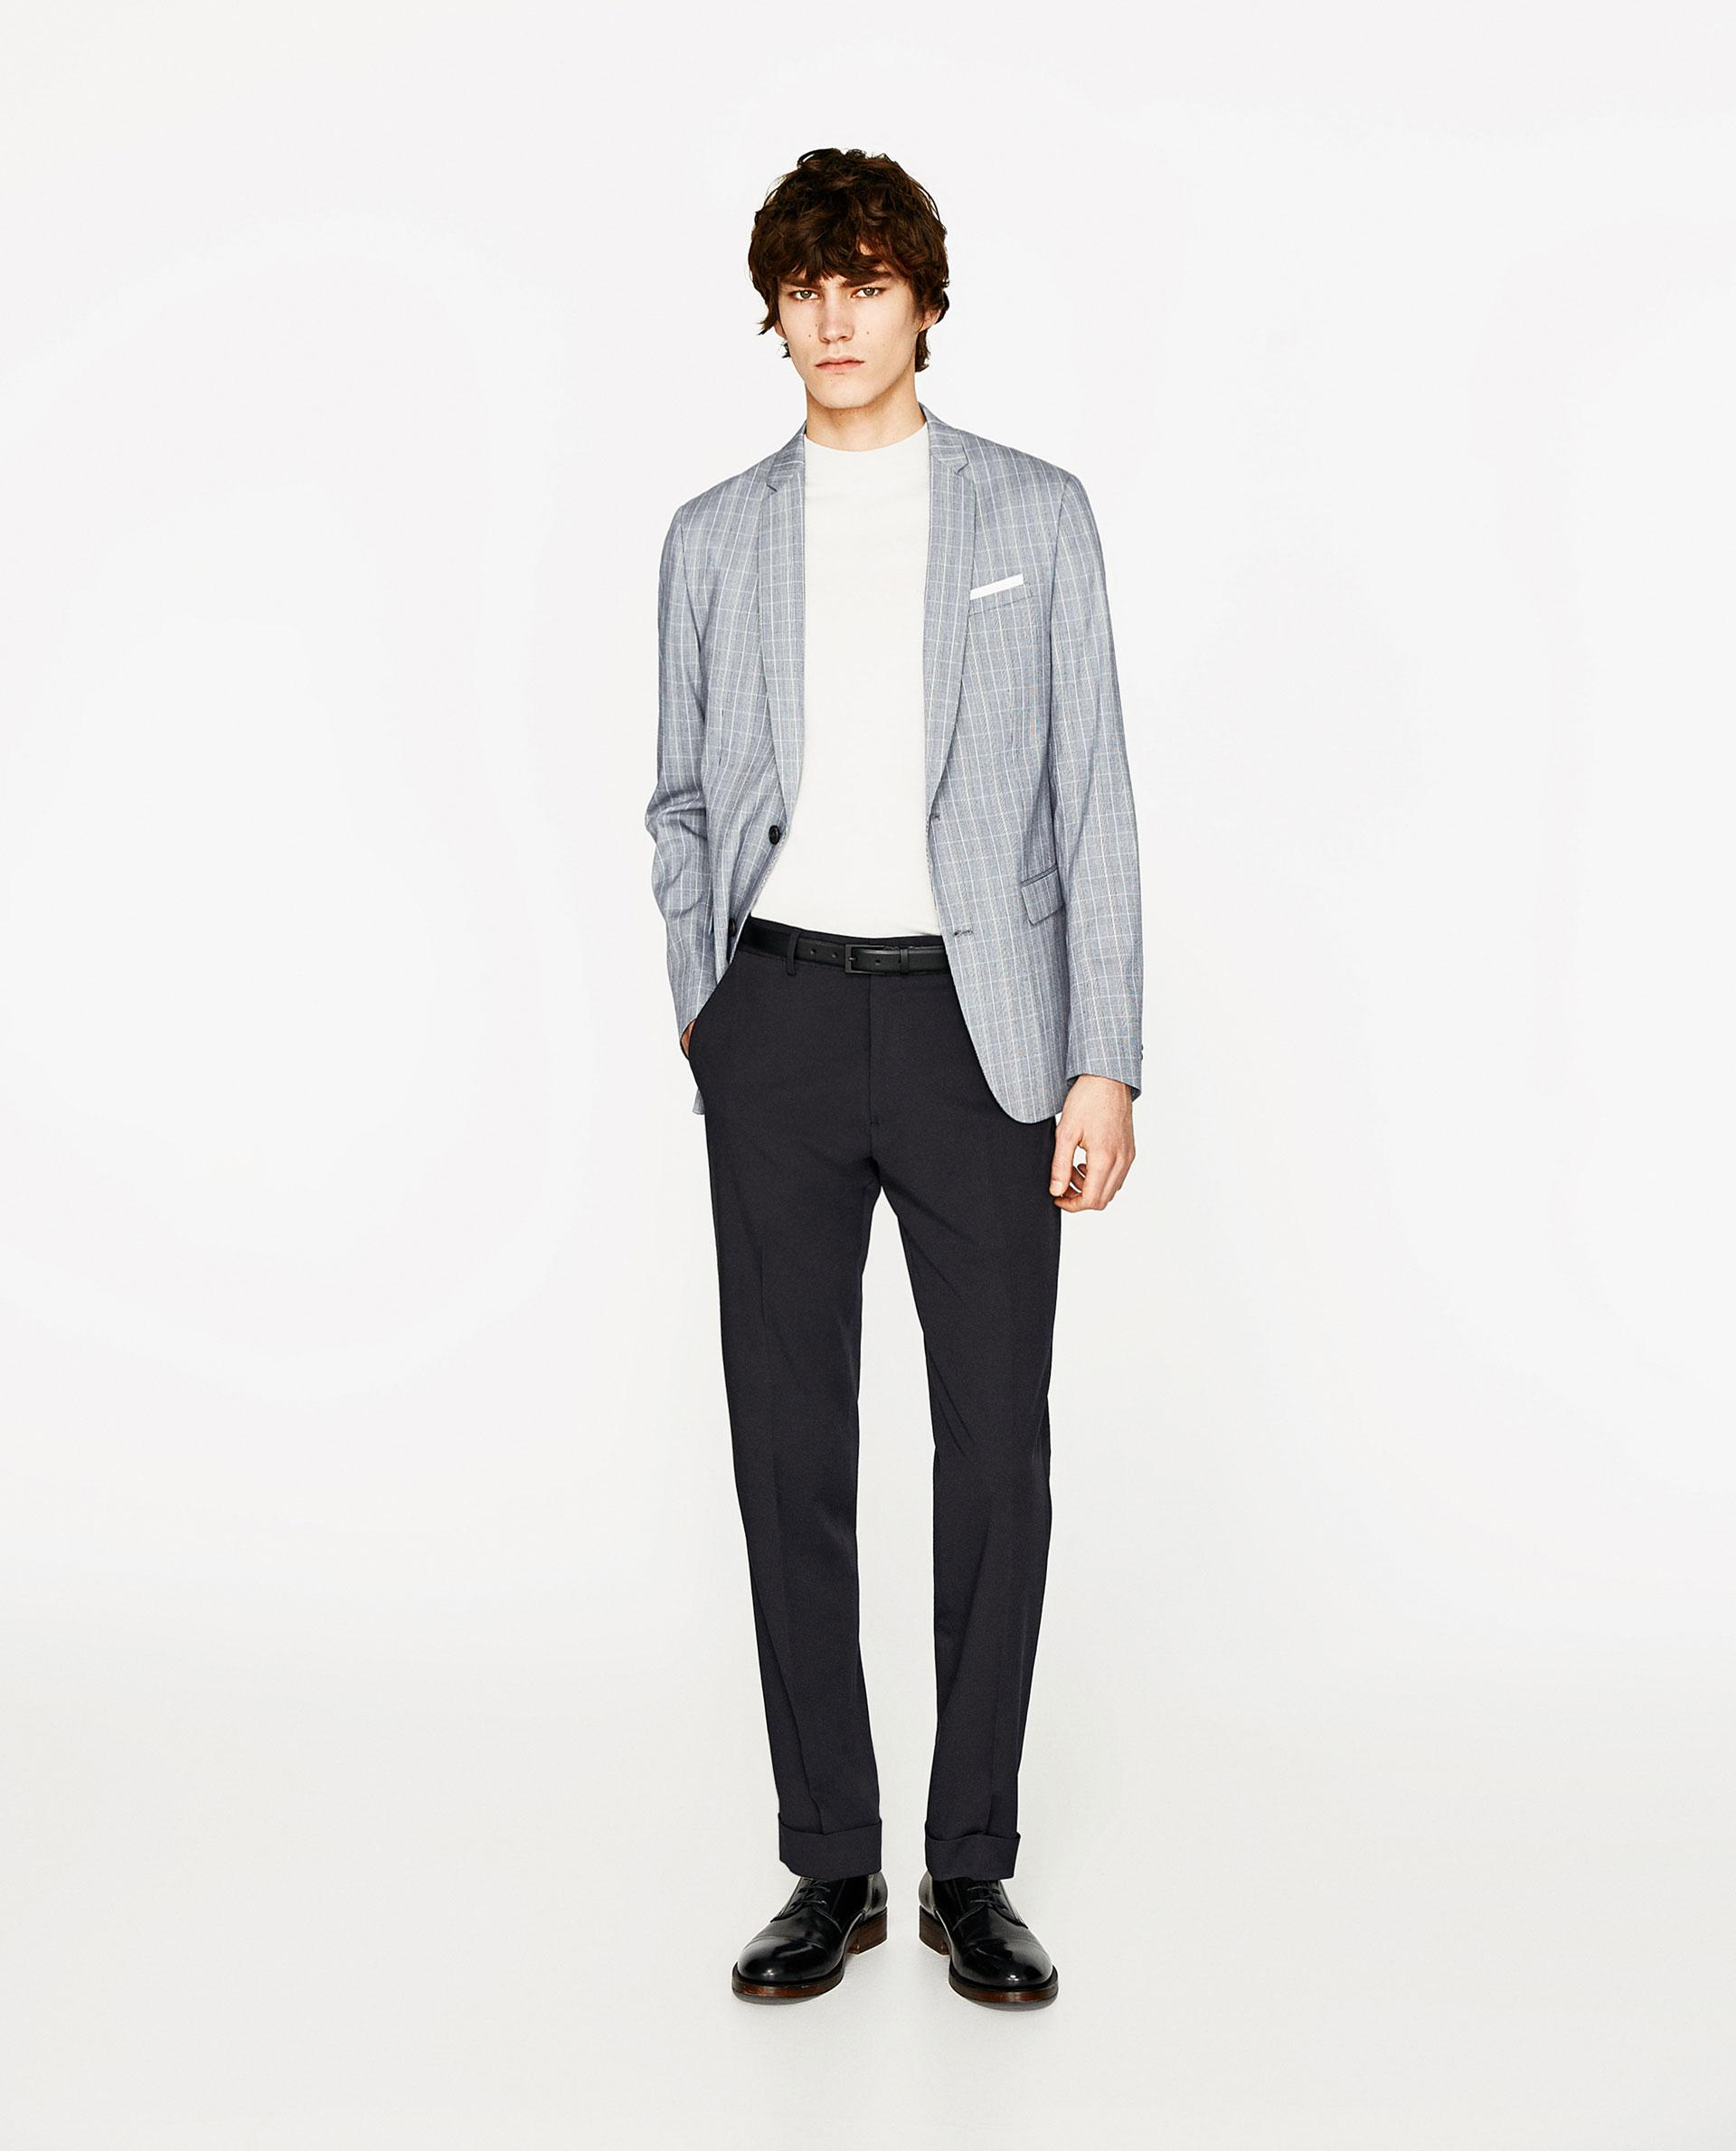 Find Men's Navy Blue Pants, Women's Navy Blue Pants and Kids Navy Blue Pants at Macy's. Macy's Presents: The Edit - A curated mix of fashion and inspiration Check It Out Free Shipping with $75 purchase + Free Store Pickup.